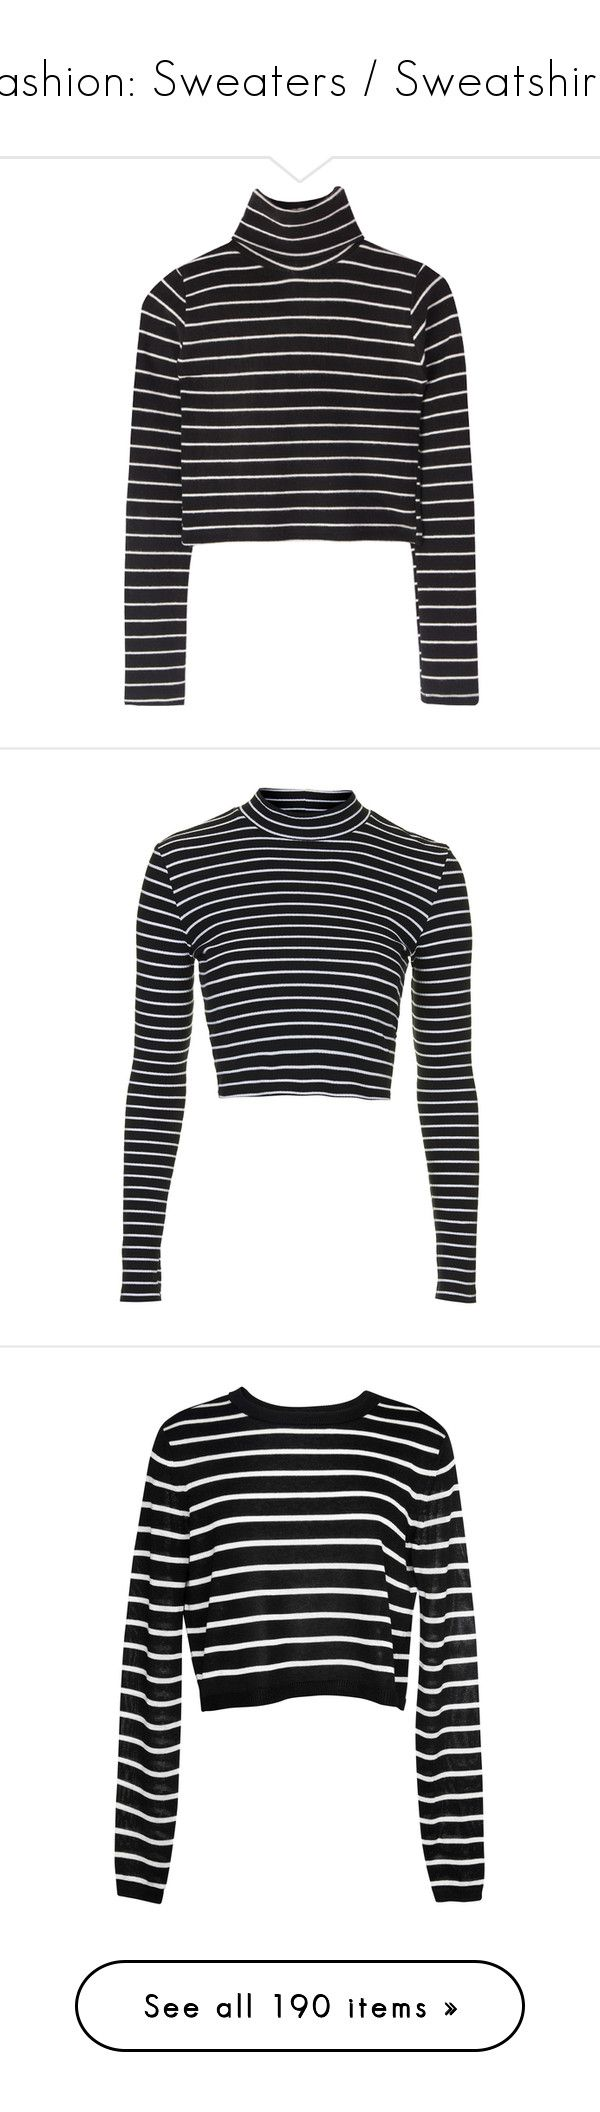 """Fashion: Sweaters / Sweatshirts"" by katiasitems on Polyvore featuring tops, shirts, sweaters, crop top, long sleeve tops, fold long sleeve shirt, long-sleeve shirt, folding shirts, striped crop top and crop tops"